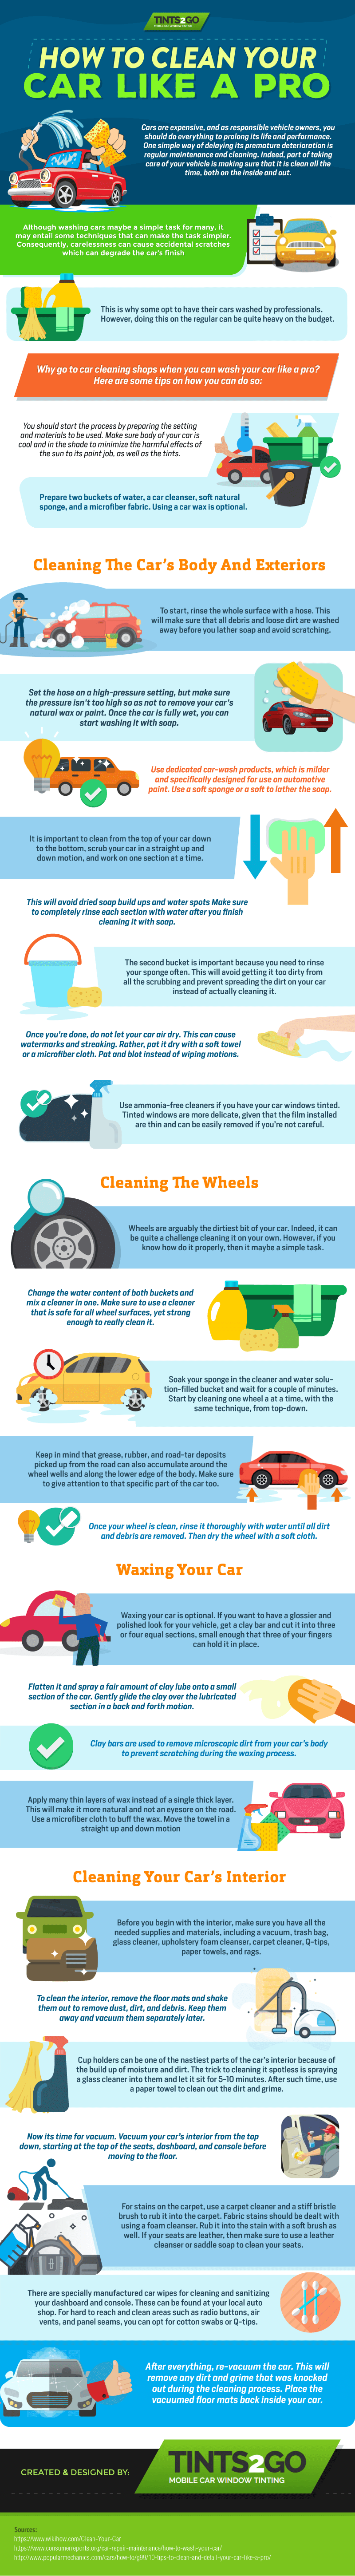 Pro Clean Car Wash >> How To Clean Your Car Like A Pro Clean Your Car Cleaning Car